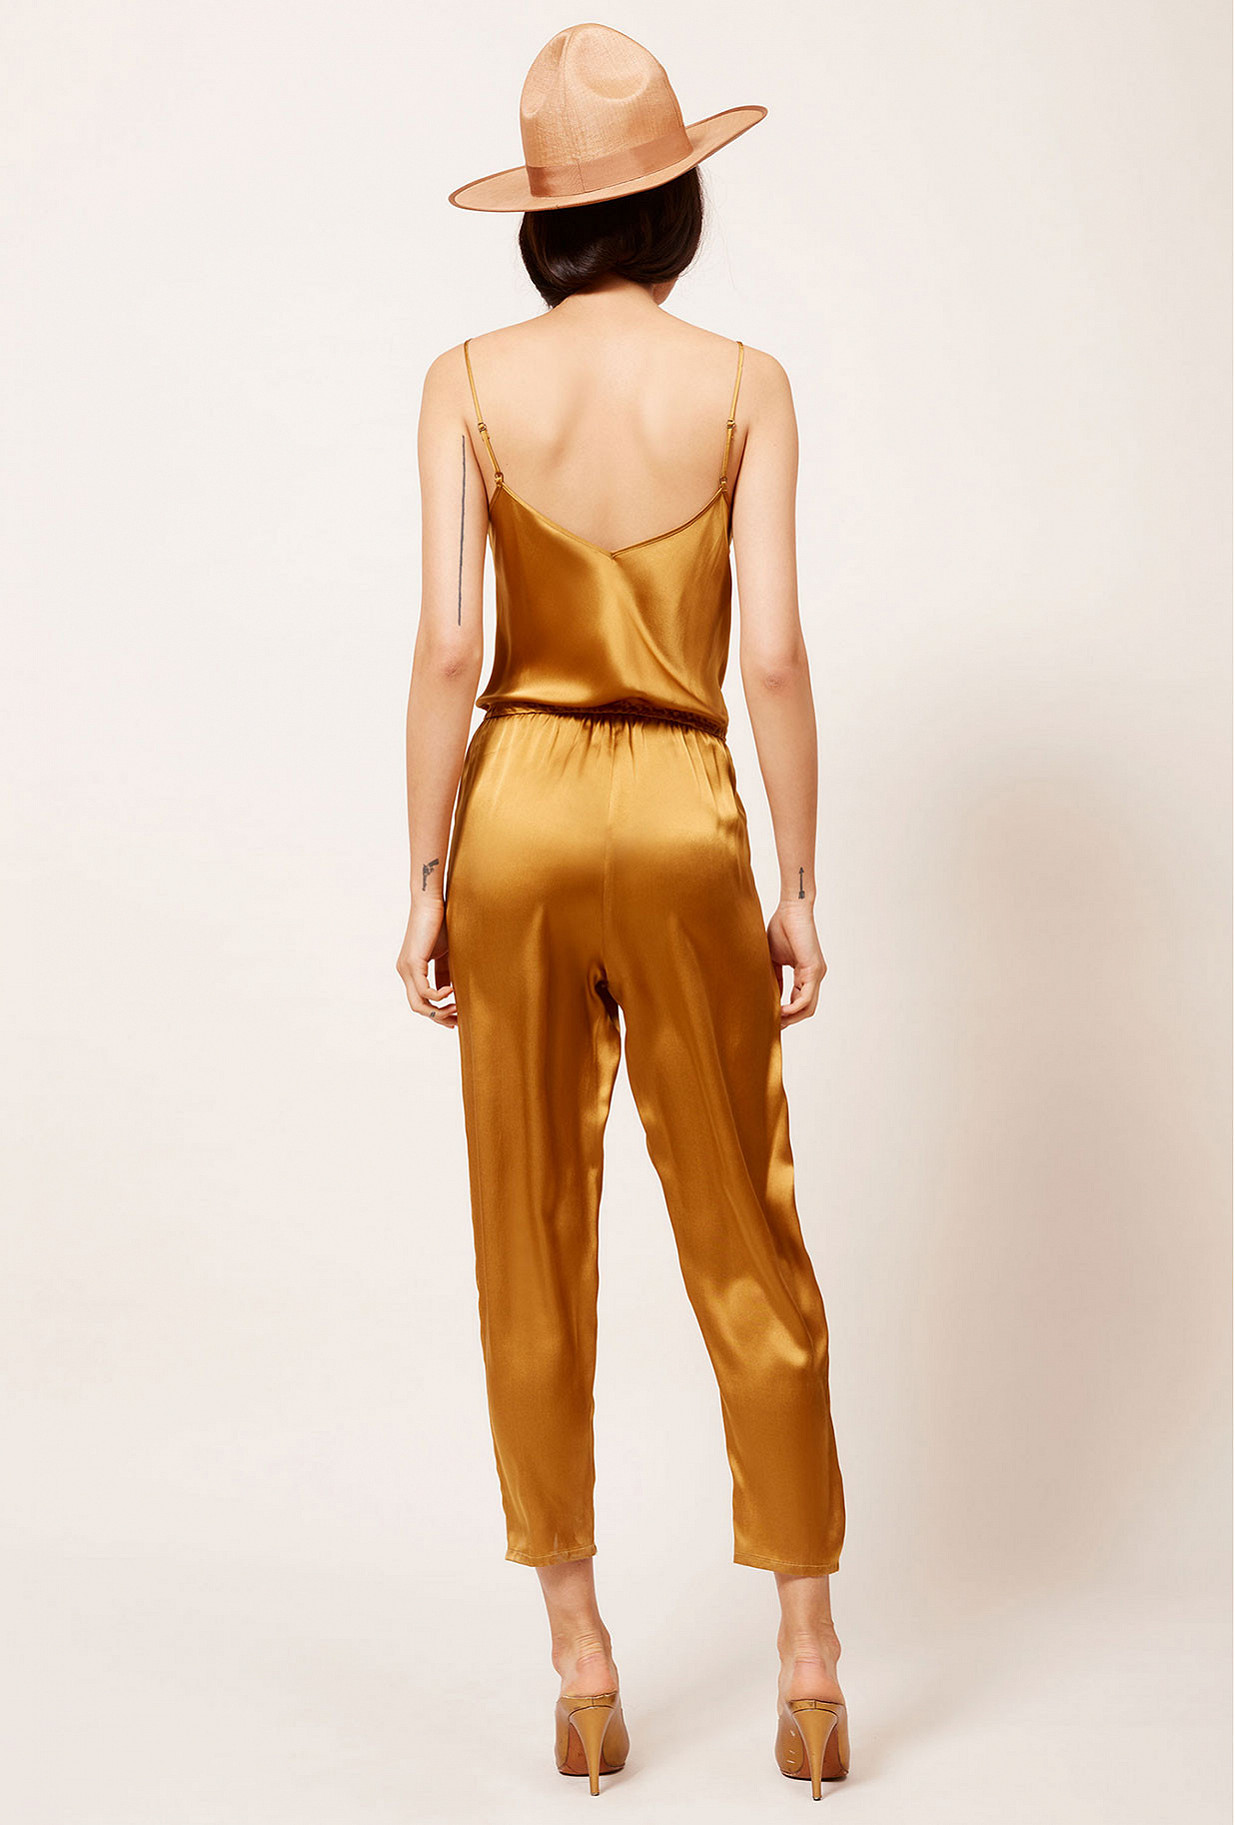 Paris clothes store Jumpsuit  Noche french designer fashion Paris